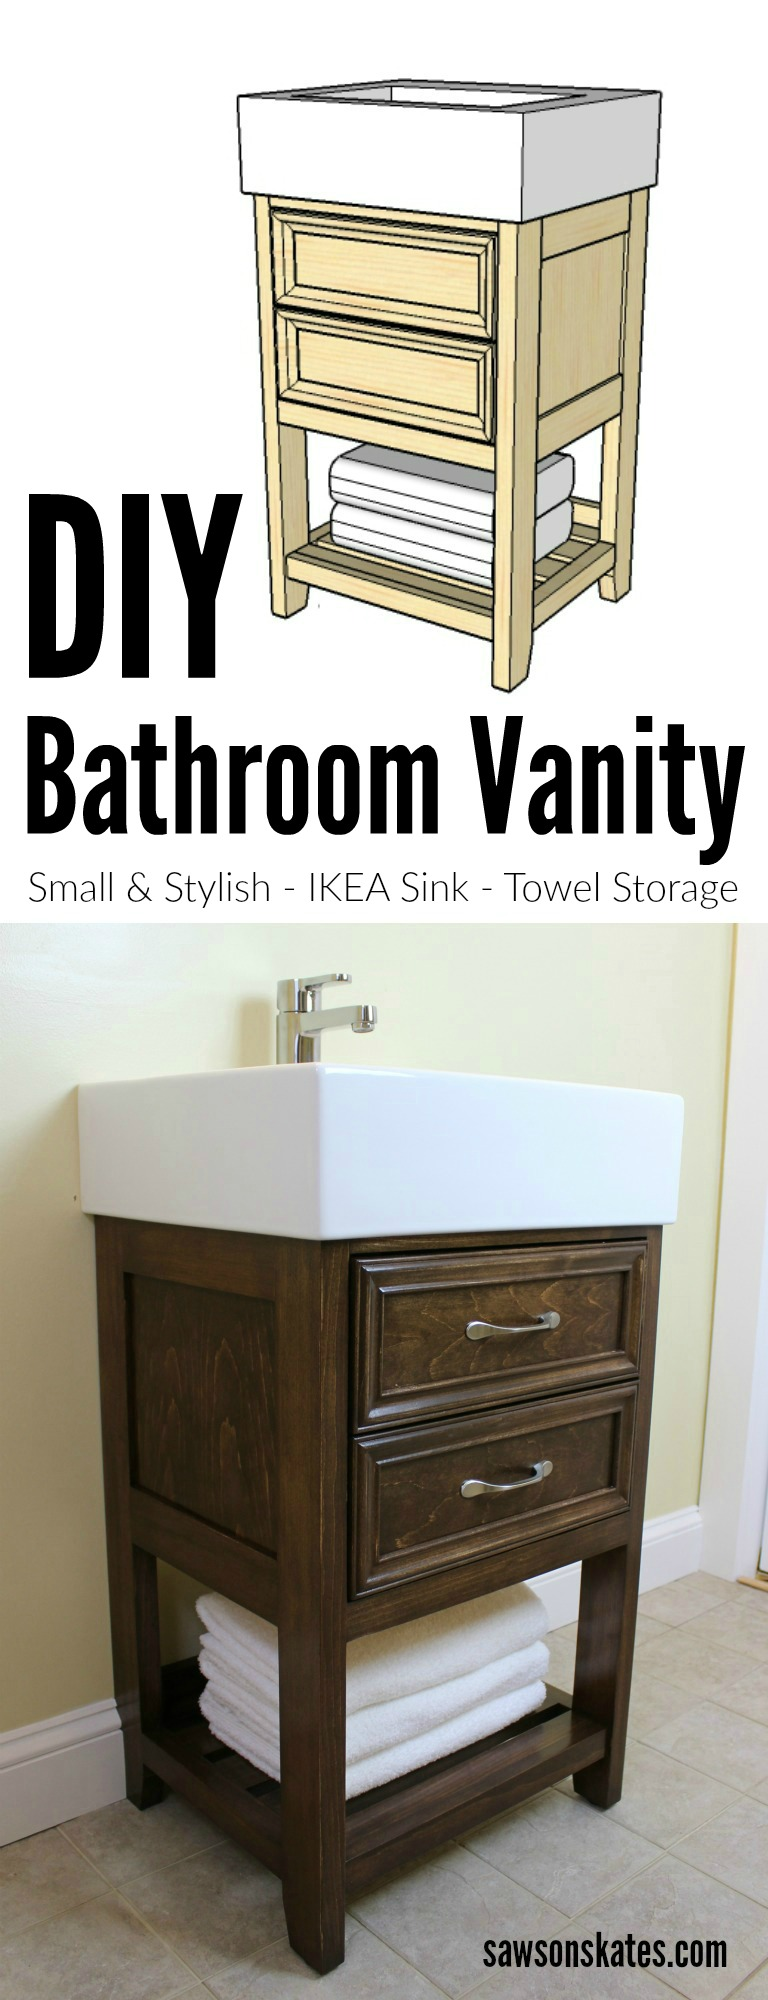 Looking for small DIY bathroom vanity ideas? Check out the plans for this DIY vanity designed to look like a small dresser. It features book-matched panels, faux drawers and an IKEA Yddingen sink. It's BIG on style, but fits in a small space!